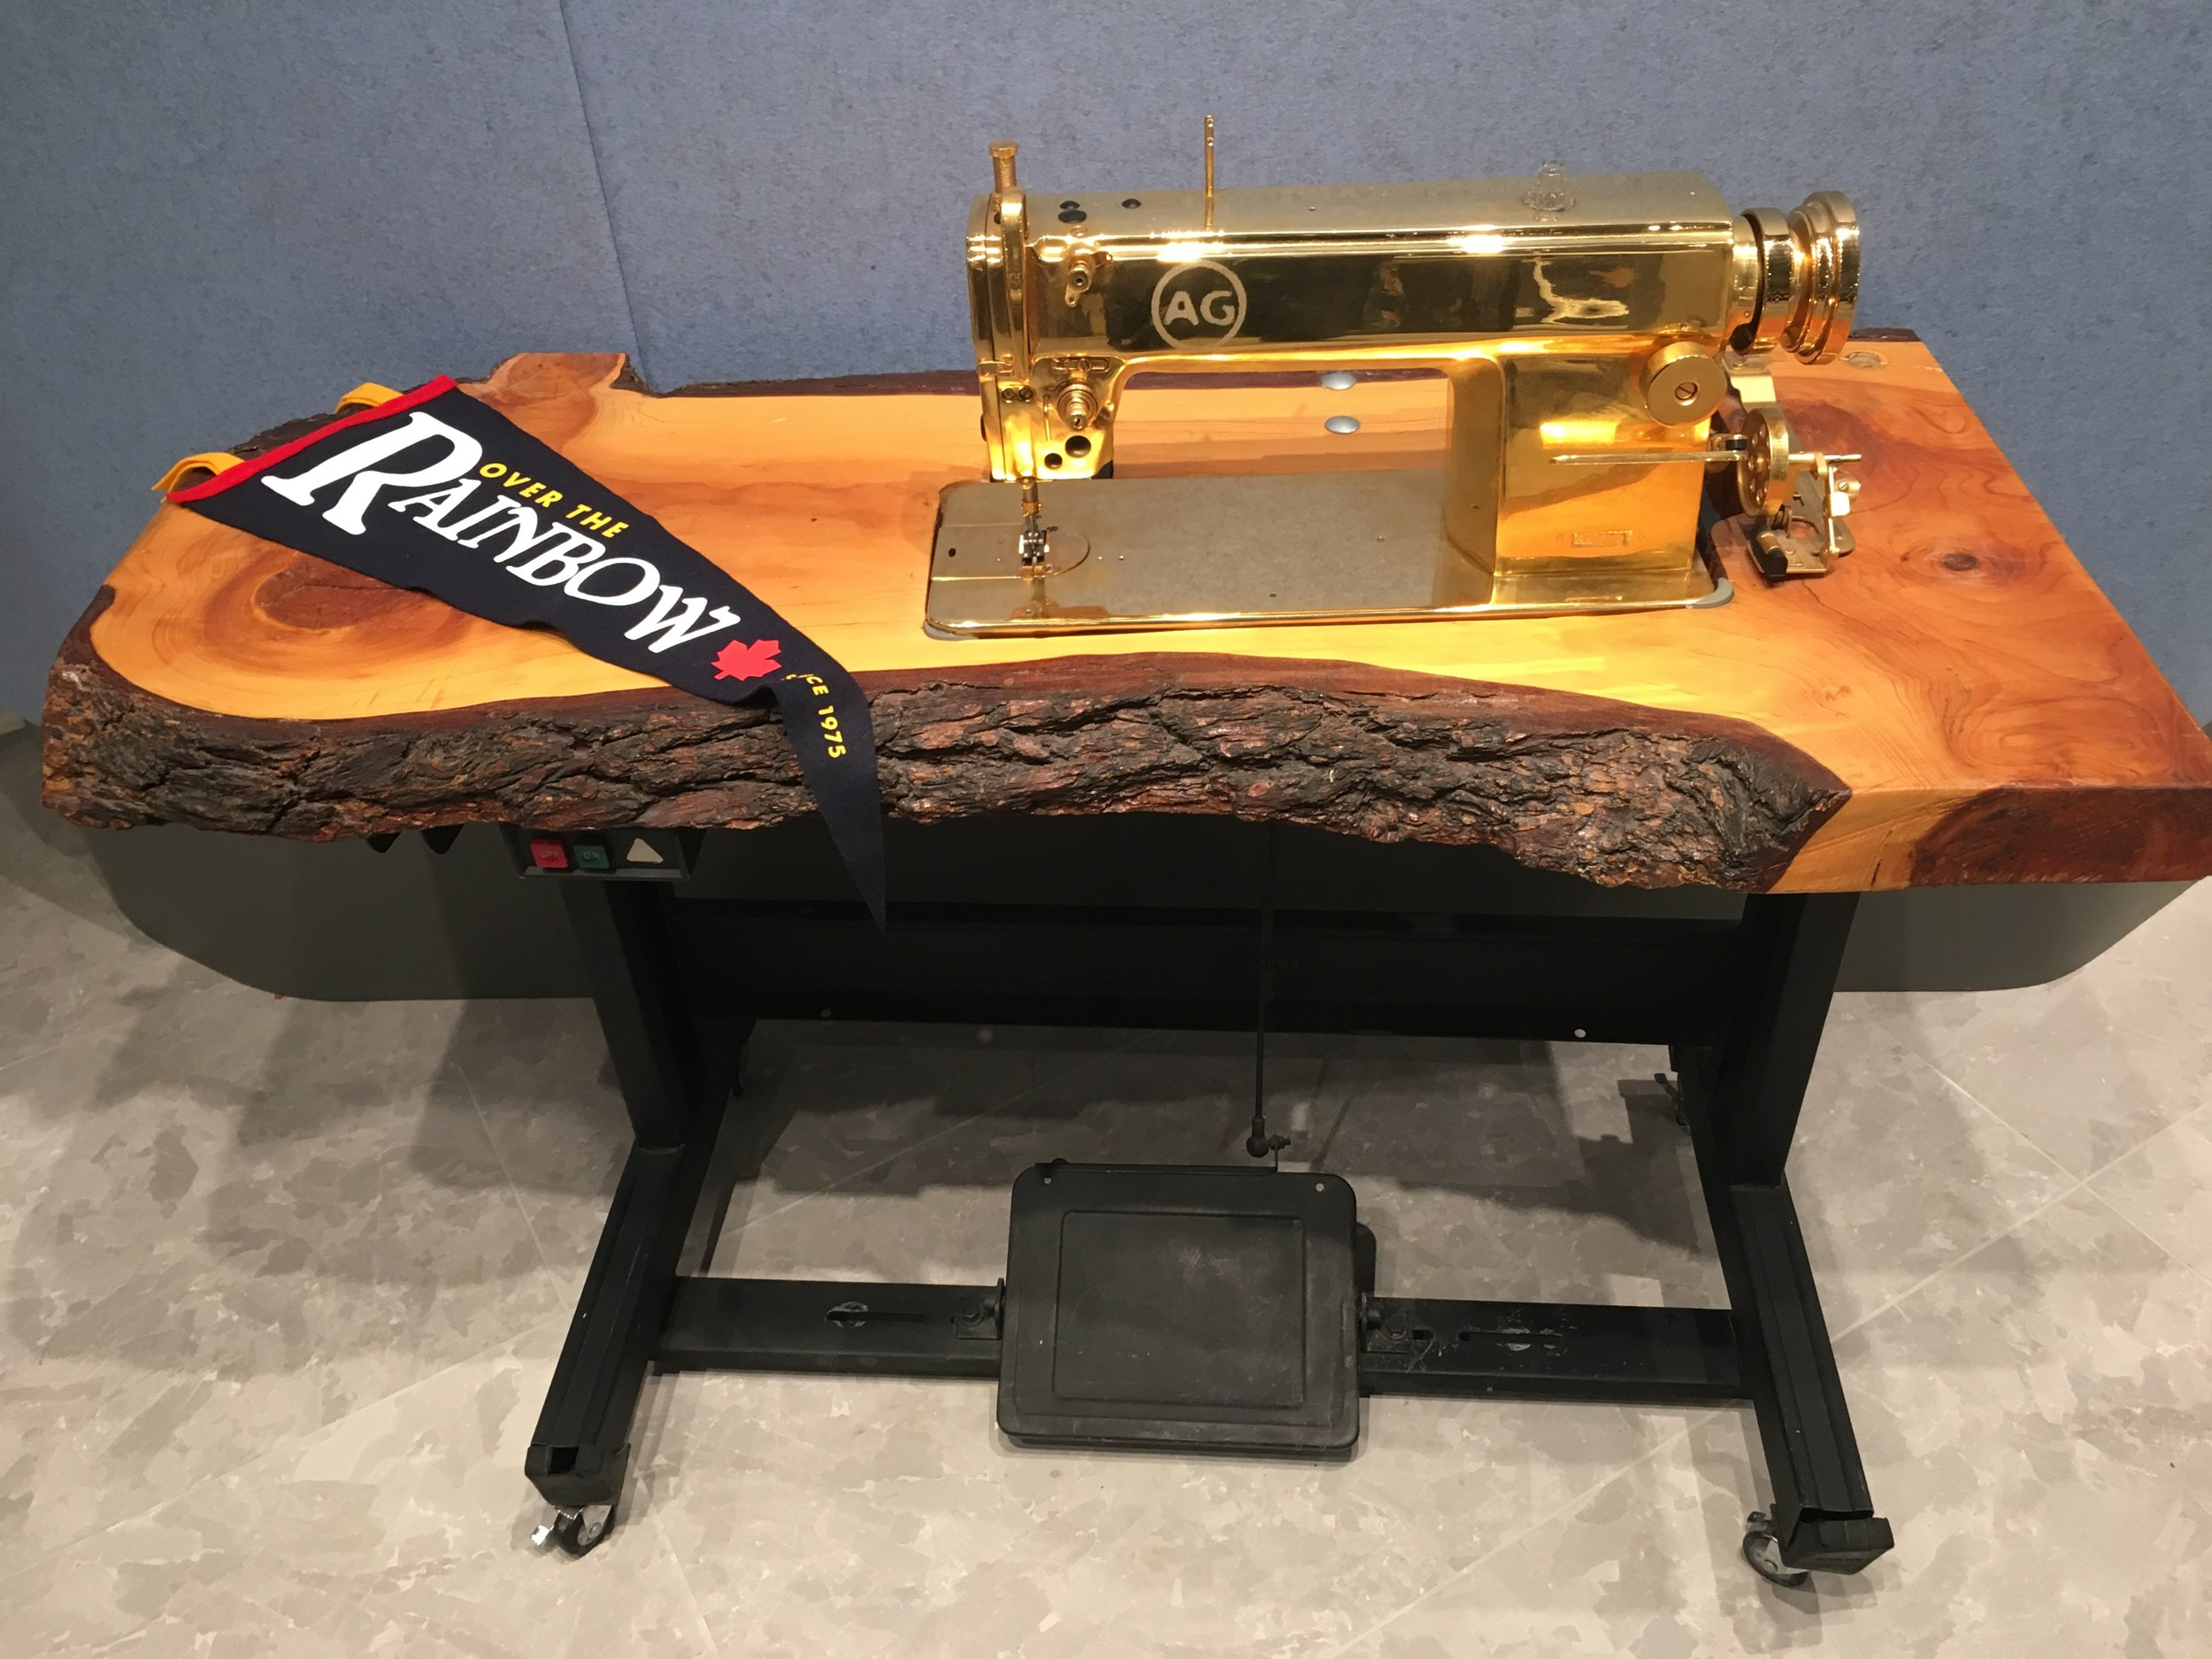 24k gold plated sewing machine, a gift from AG.